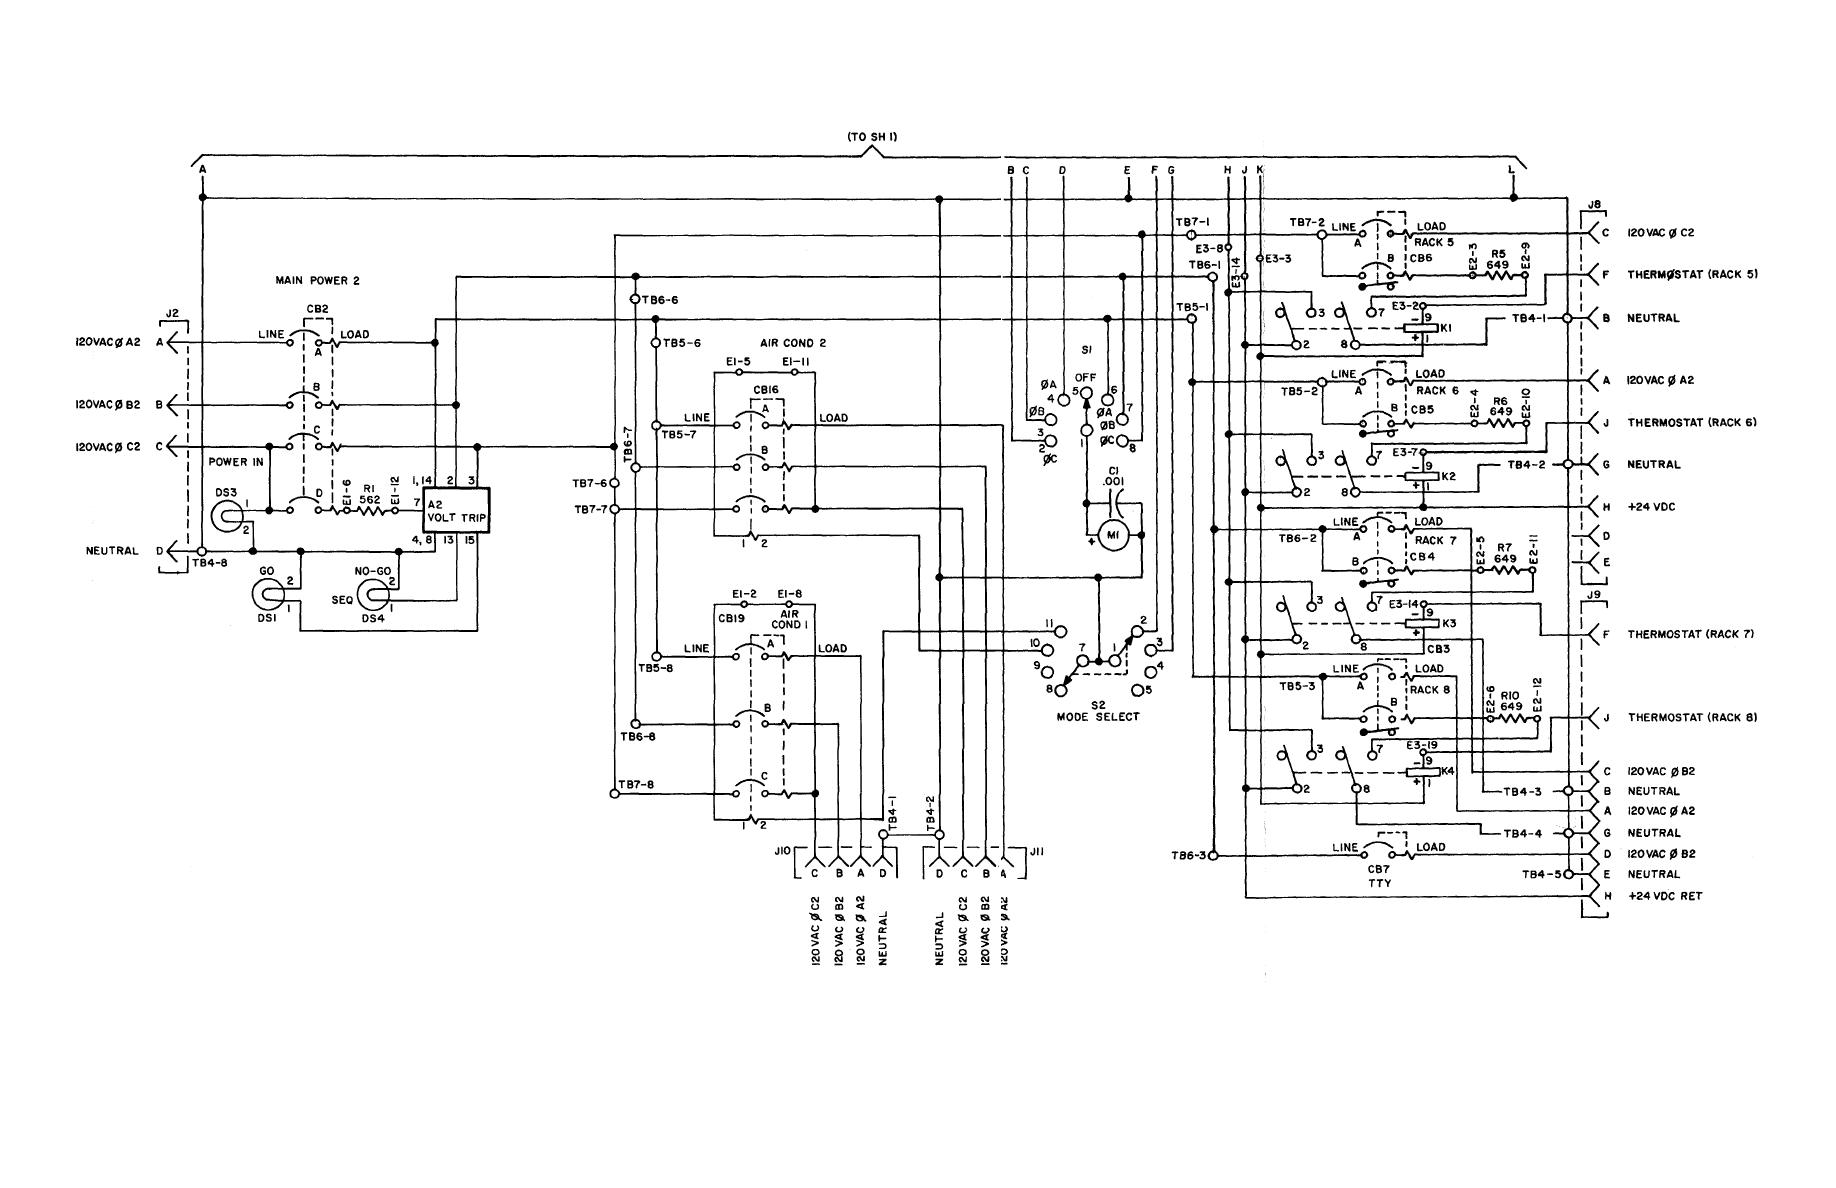 TM 11 5895 846 140385im figure fo 6 power distribution panel, schematic wiring diagram electrical distribution board wiring diagram at soozxer.org